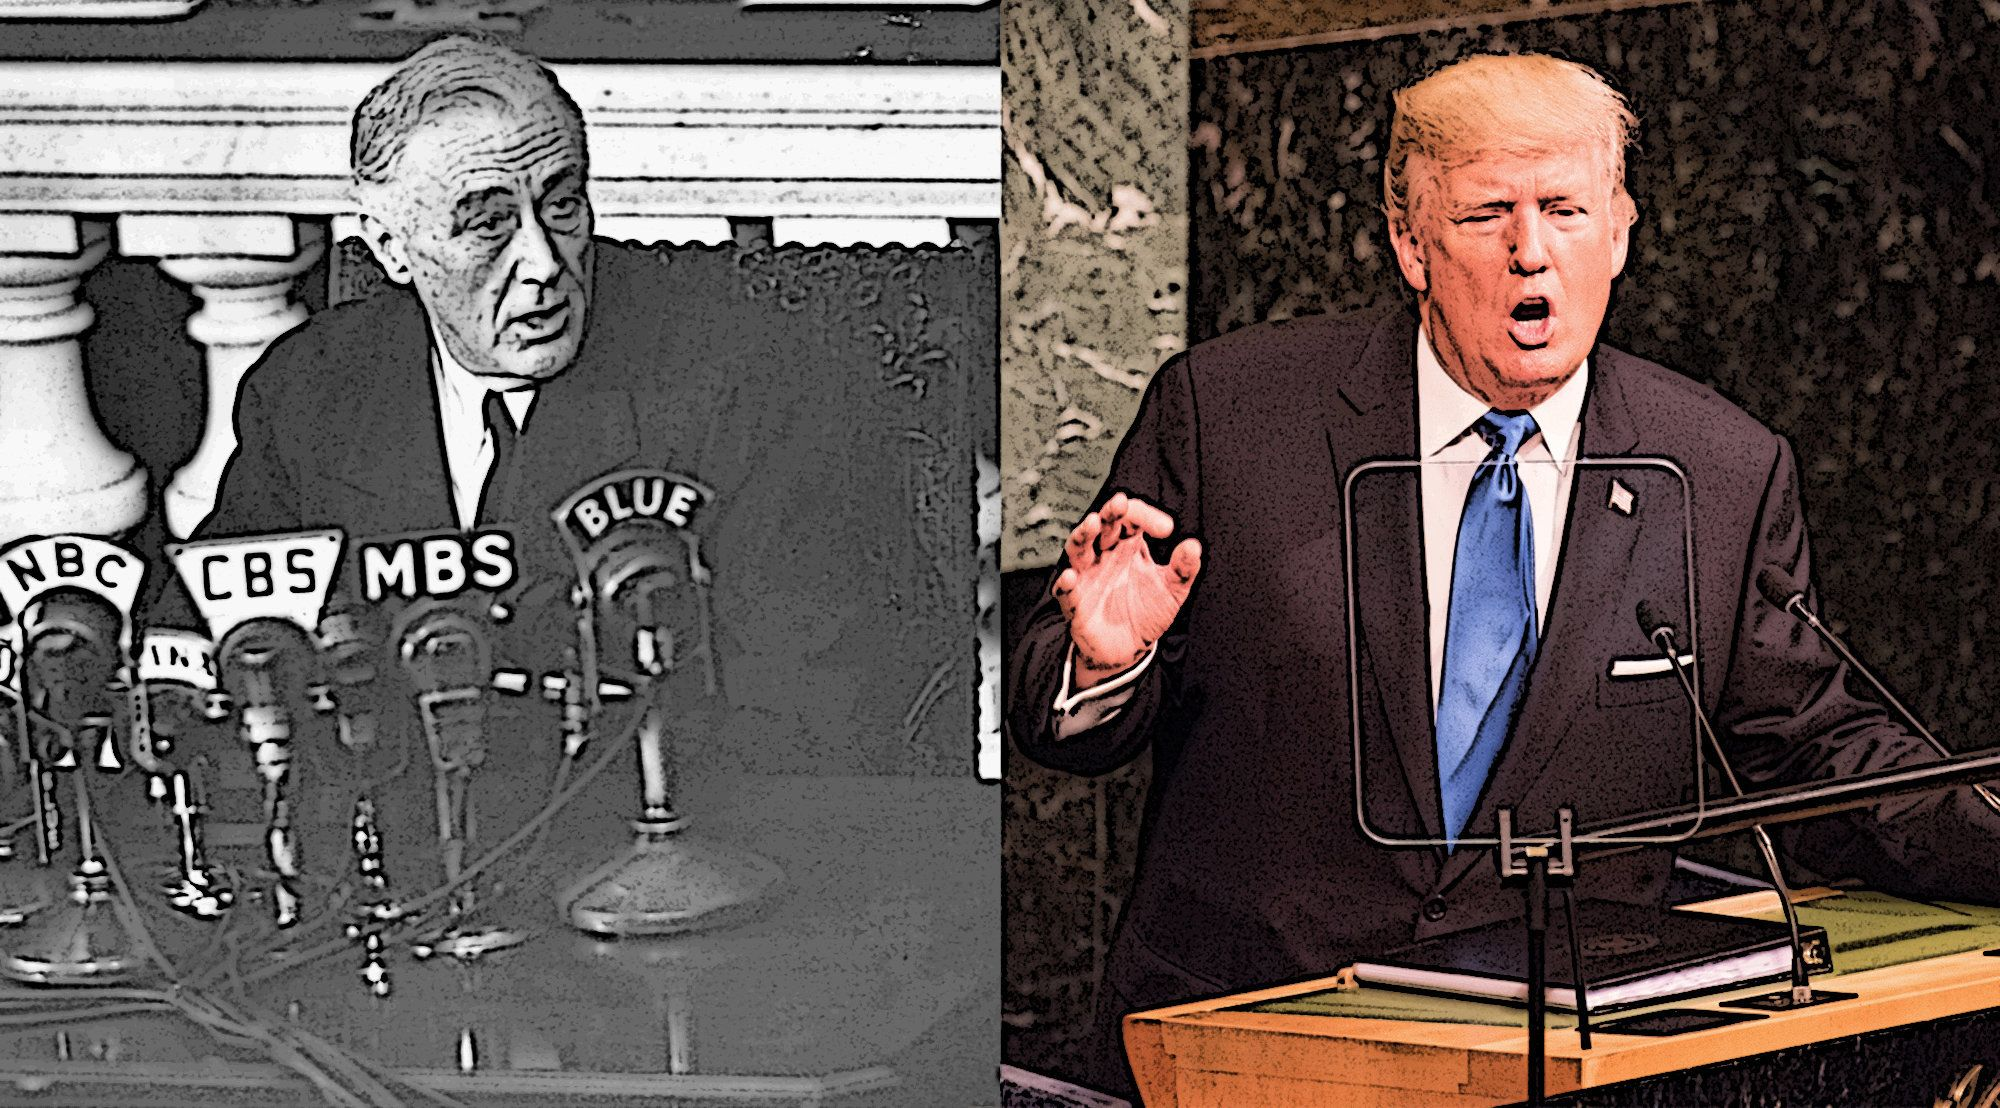 Left: U.S. President Franklin D. Roosevelt speaks to the nation in 1942. Right: U.S. President Donald Trump addresses the U.N